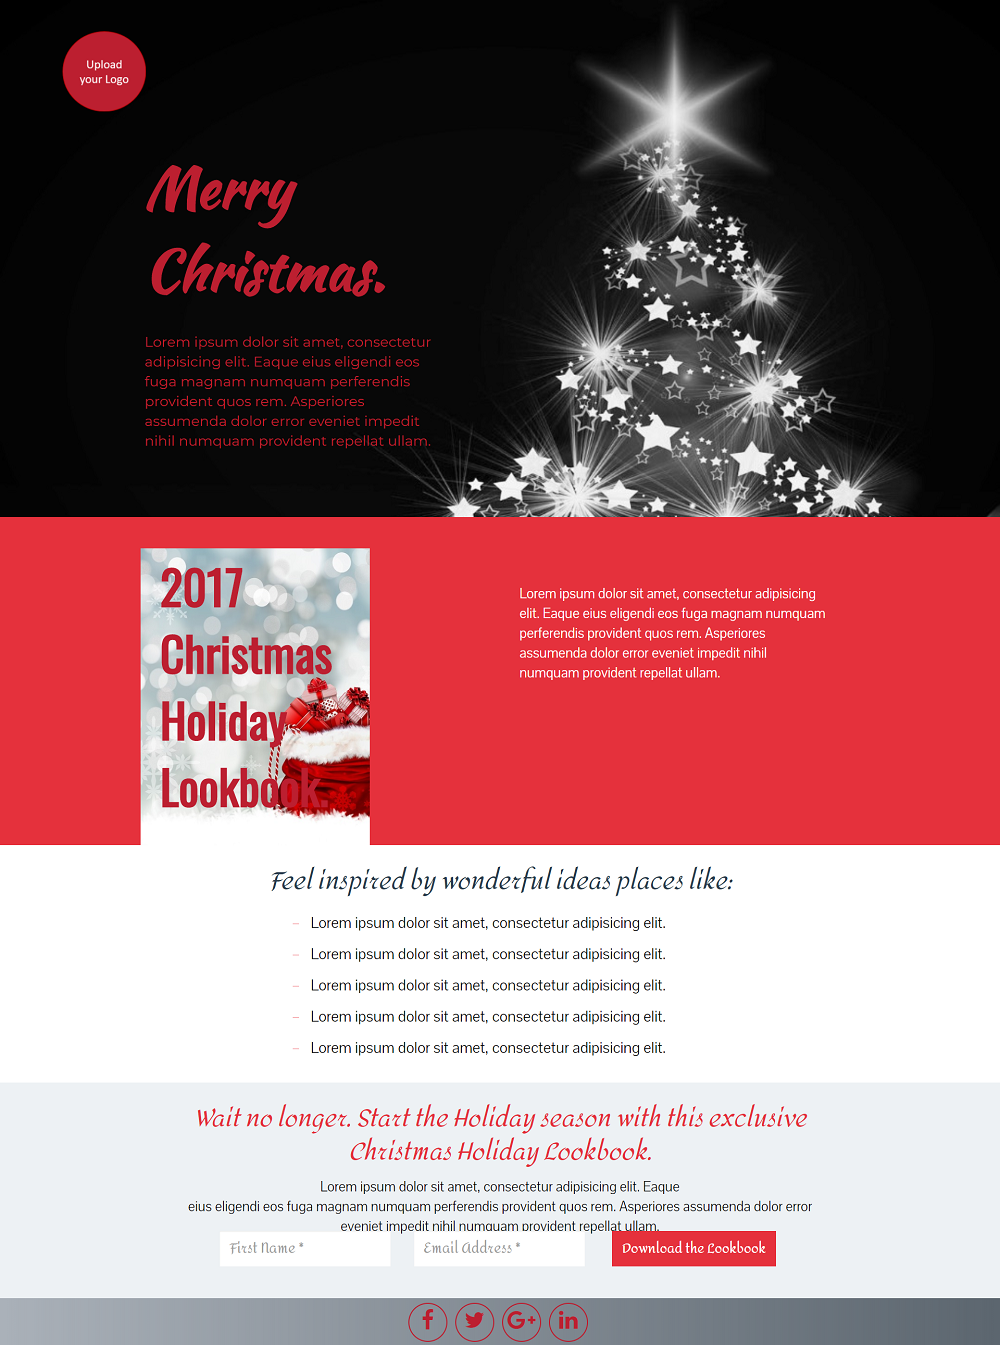 Holiday Season Landing Page Template